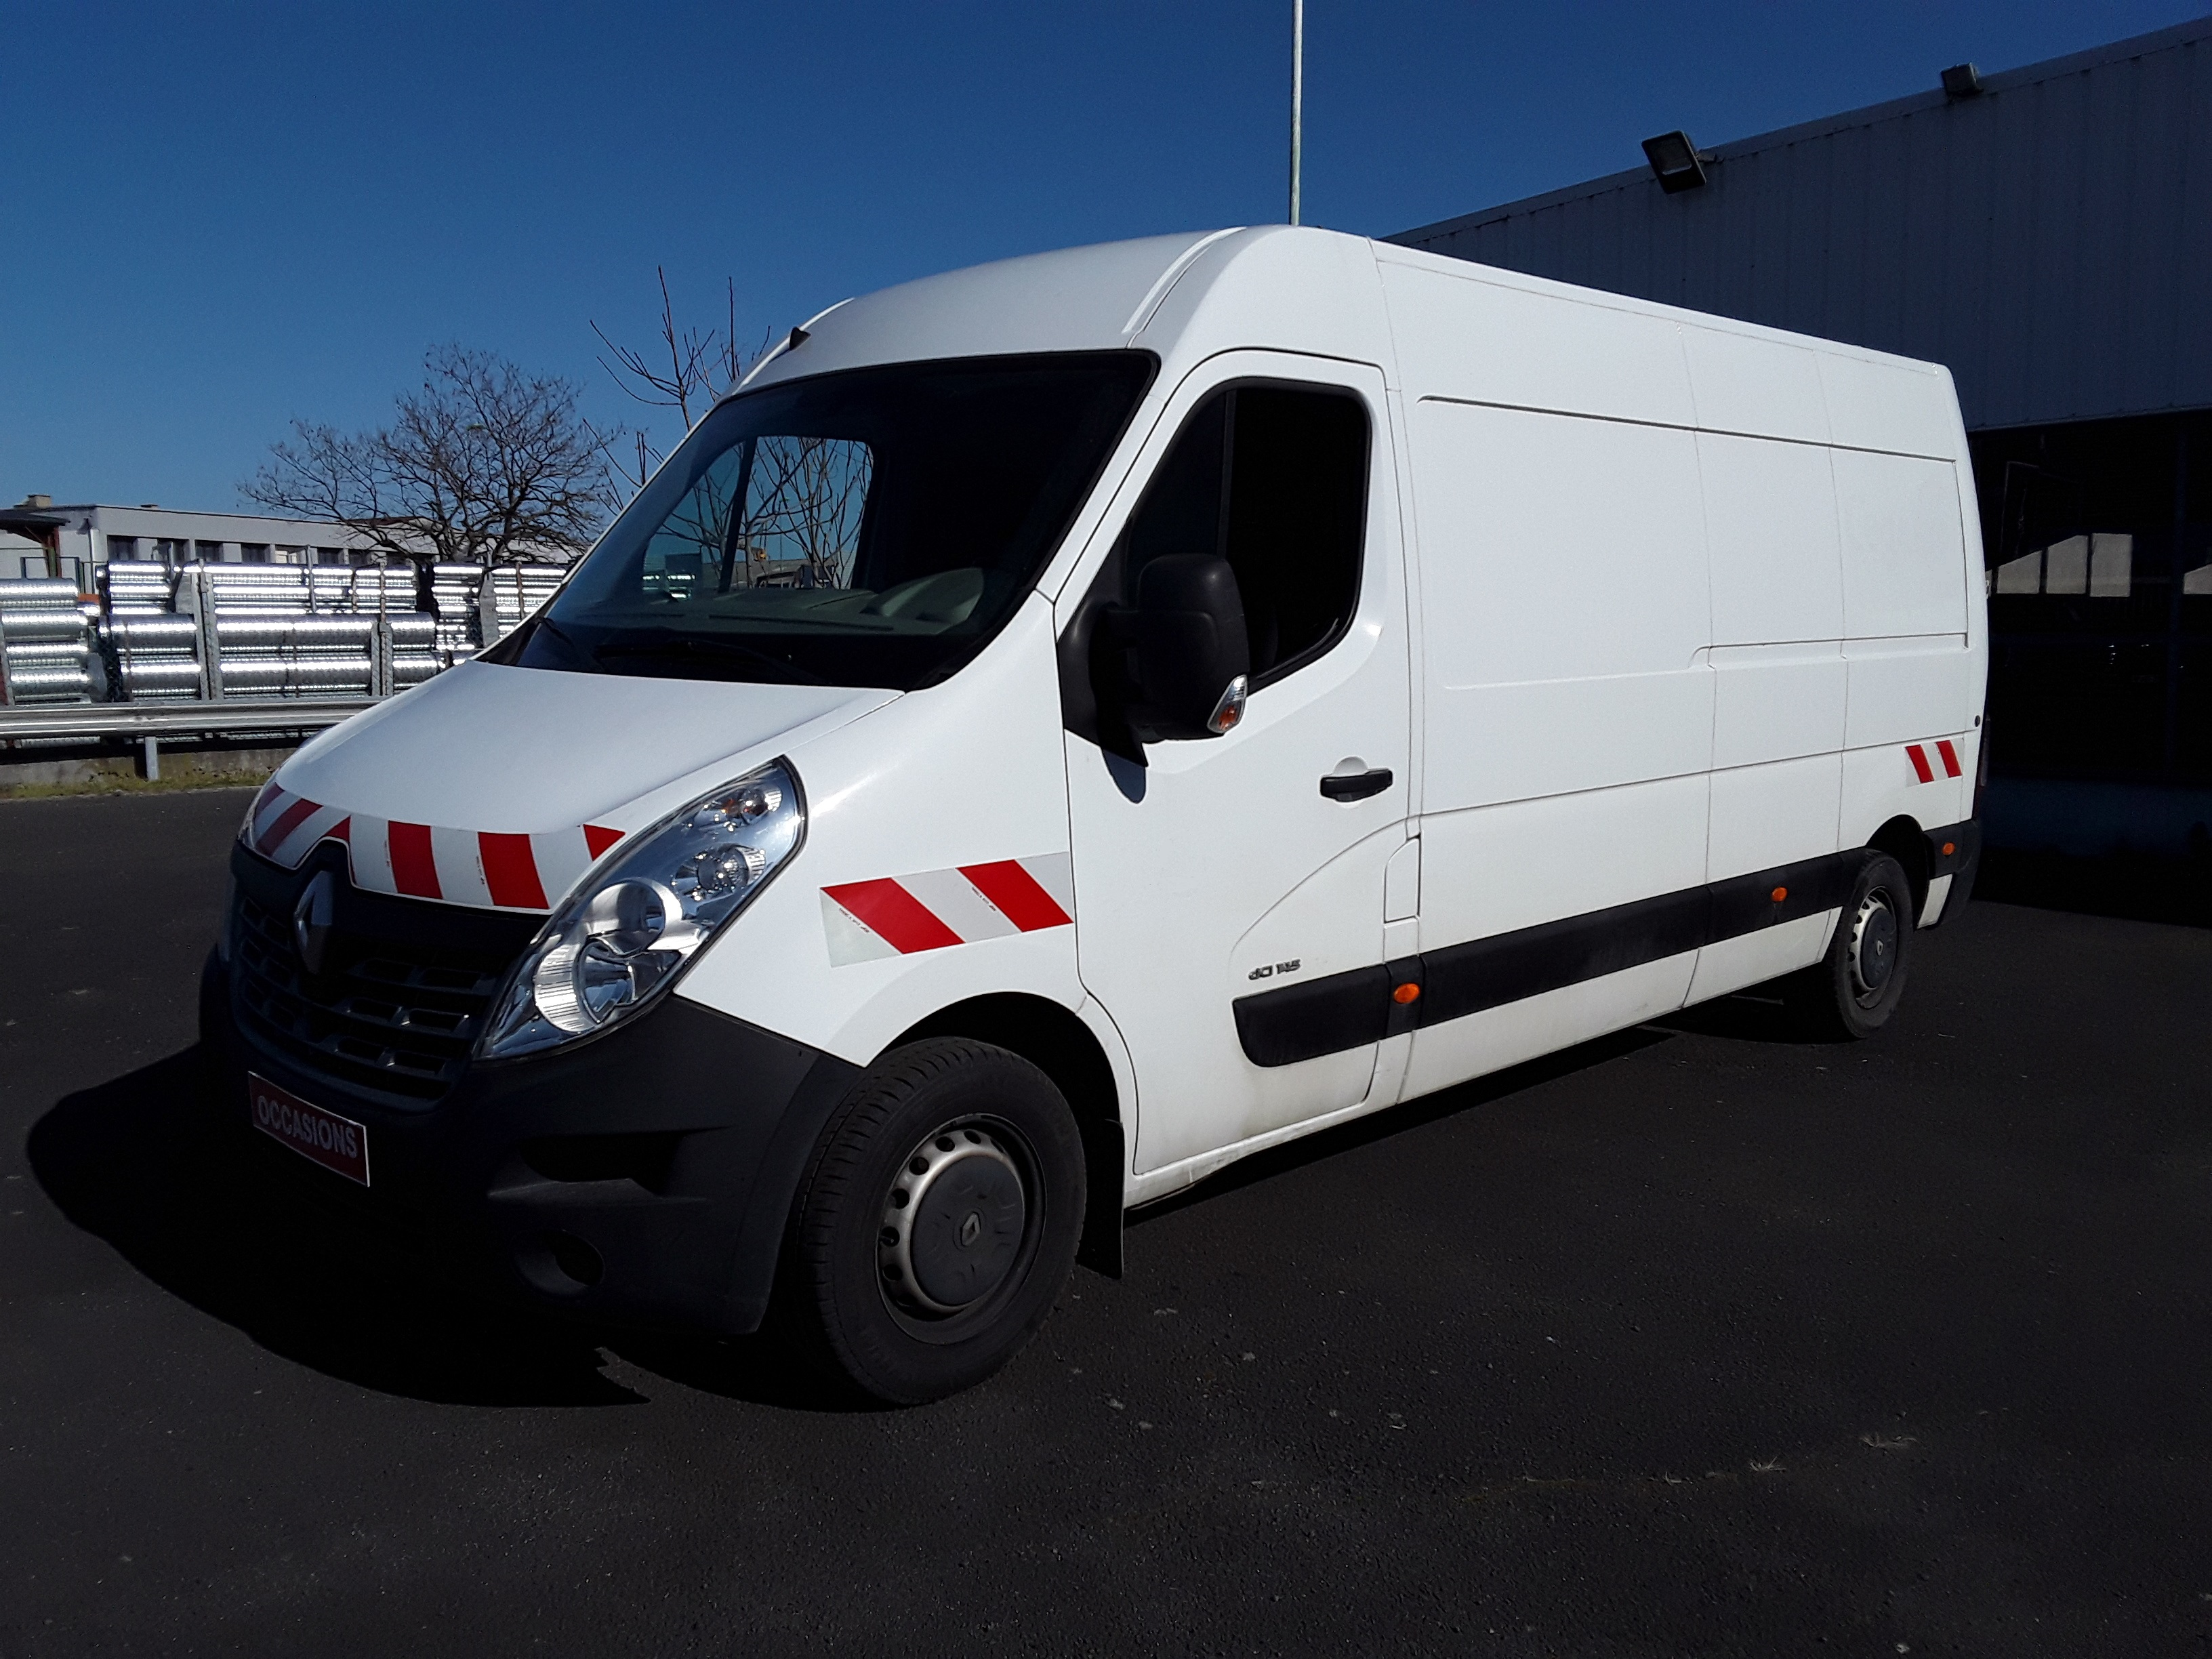 RENAULT MASTER FOURGON L3H2 3.5T 2.3 DCI 145 ENERGY E6 GRAND CONFORT d'occasion